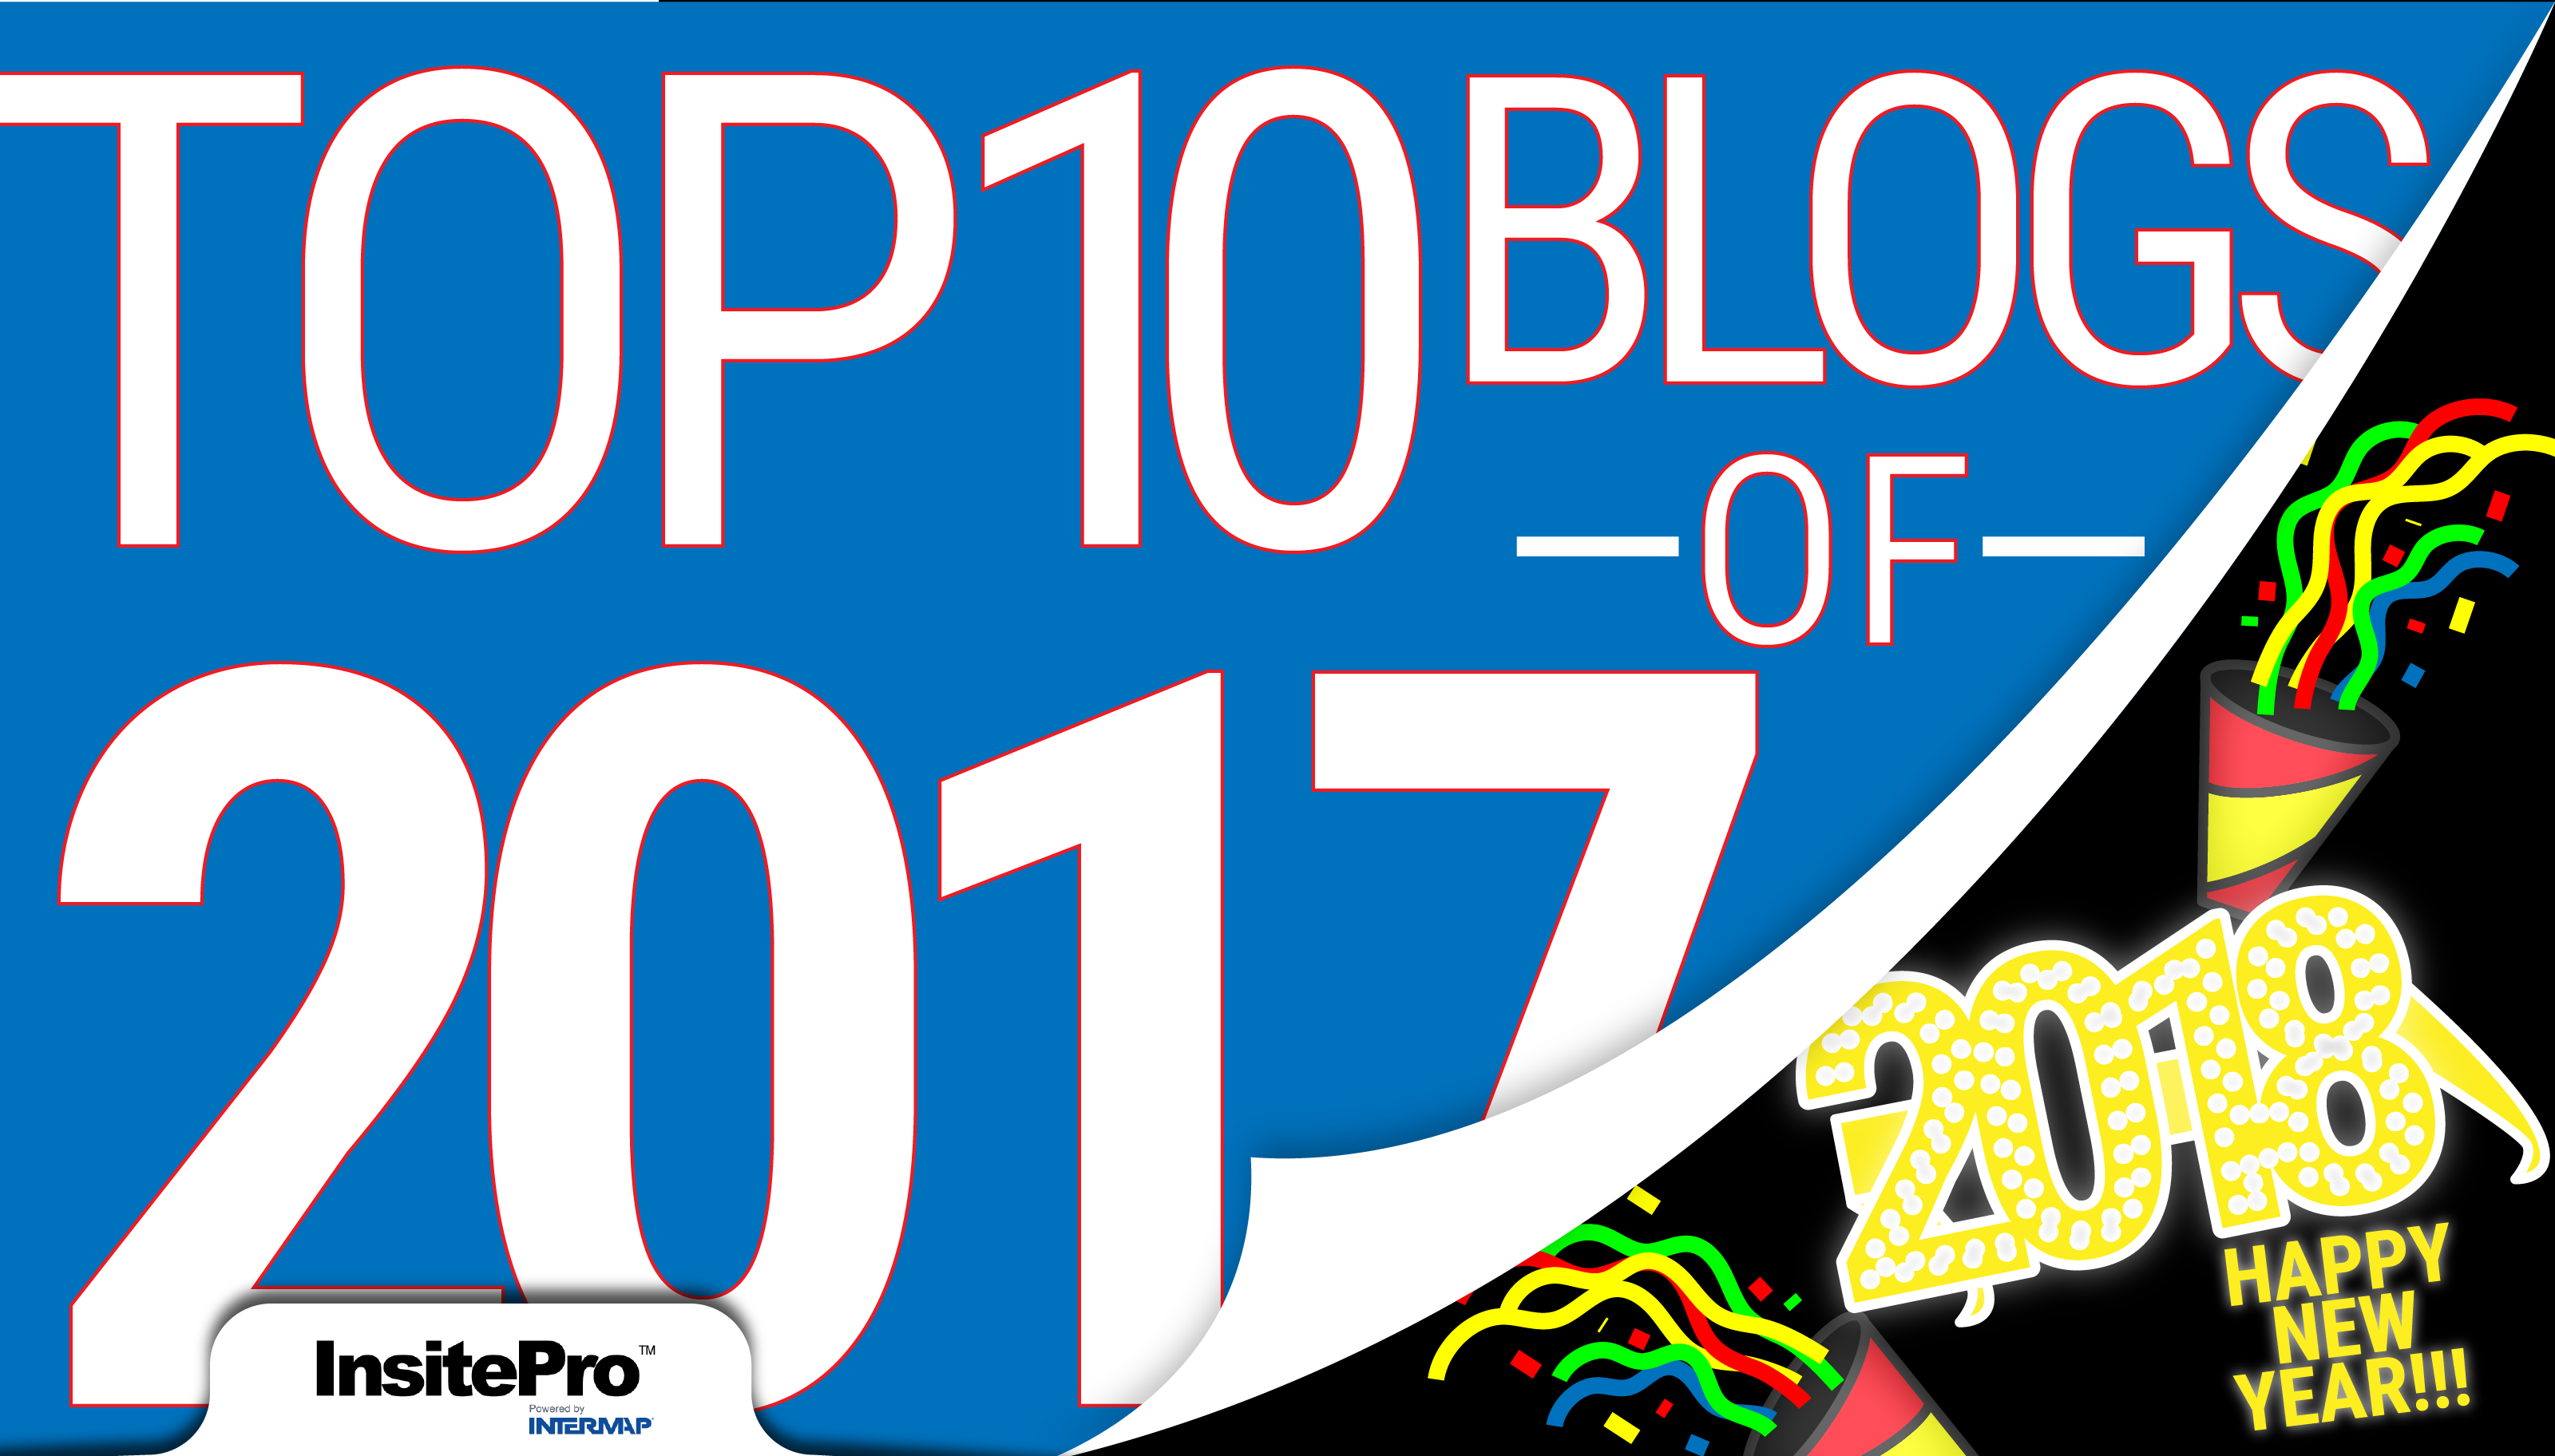 Top10blogs-01